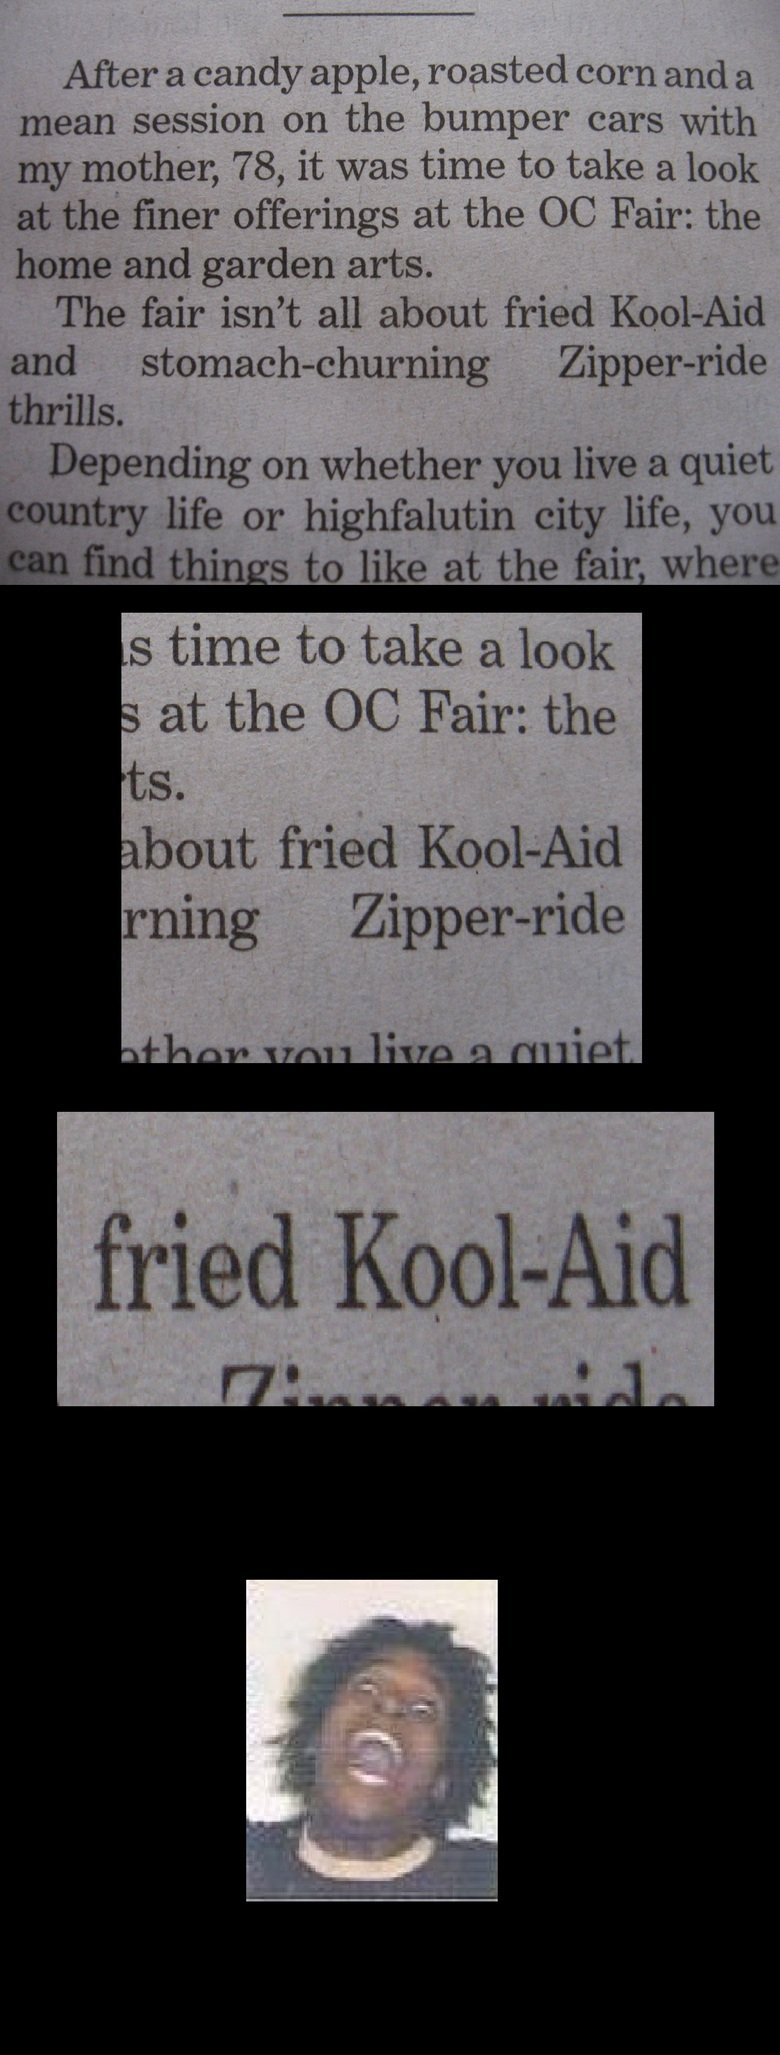 Fried Kool Aid anyone?. Found this while reading an article about my county fair. nullity life or highfalutin city life, you After a candy apple, roasted corn a